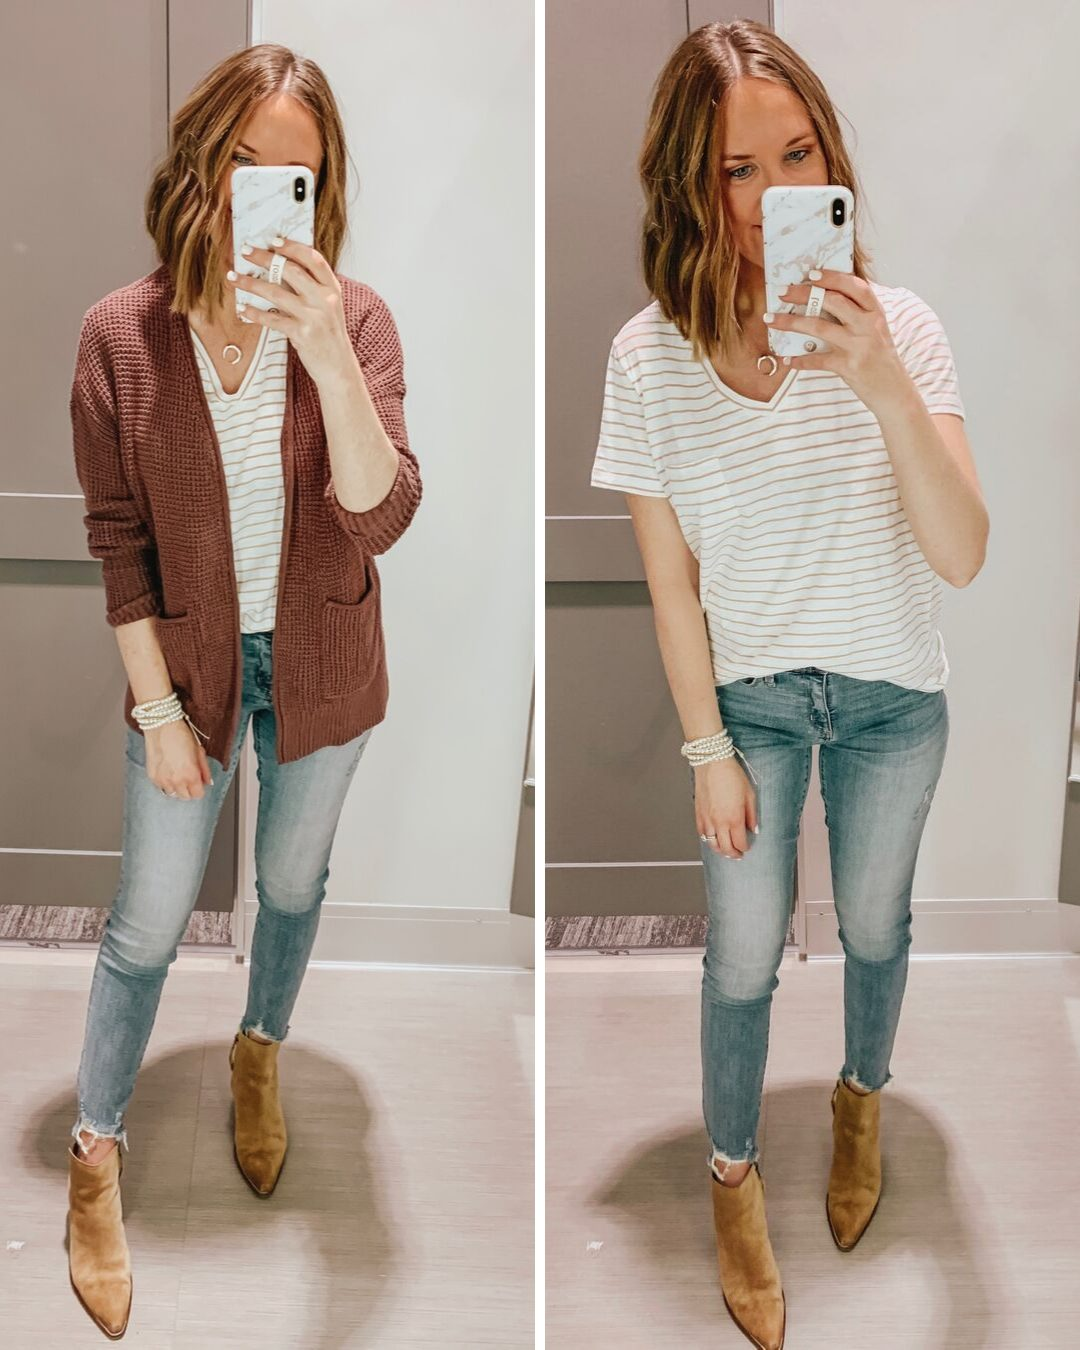 Target, fall fashion preview 2019, Universal Thread jeans, MADEWELL DUPES AT TARGET